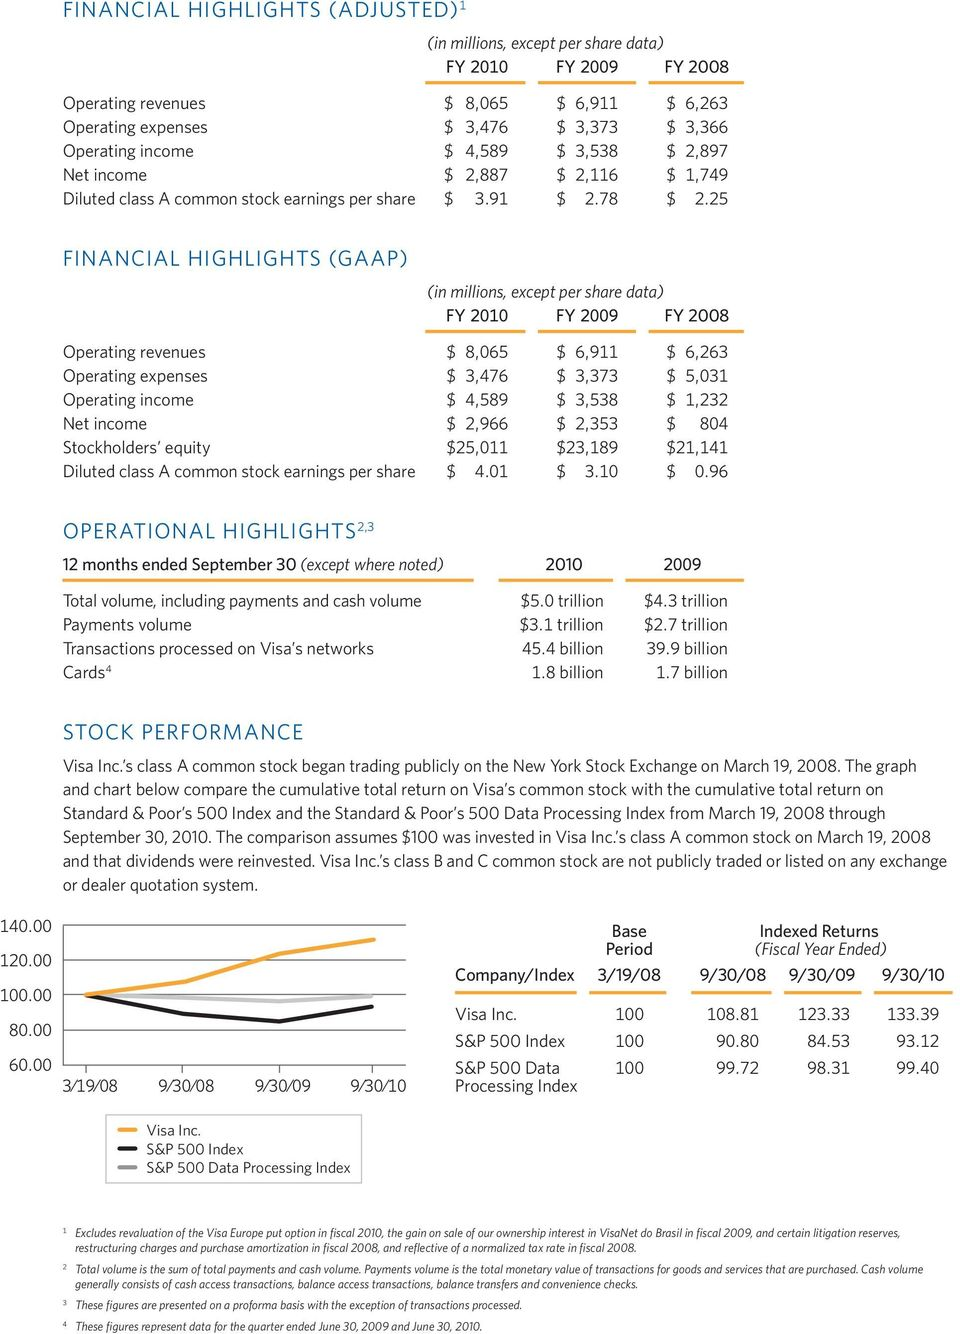 25 FINANCIAL HIGHLIGHTS (GAAP) (in millions, except per share data) FY 2010 FY 2009 FY 2008 Operating revenues $ 8,065 $ 6,911 $ 6,263 Operating expenses $ 3,476 $ 3,373 $ 5,031 Operating income $